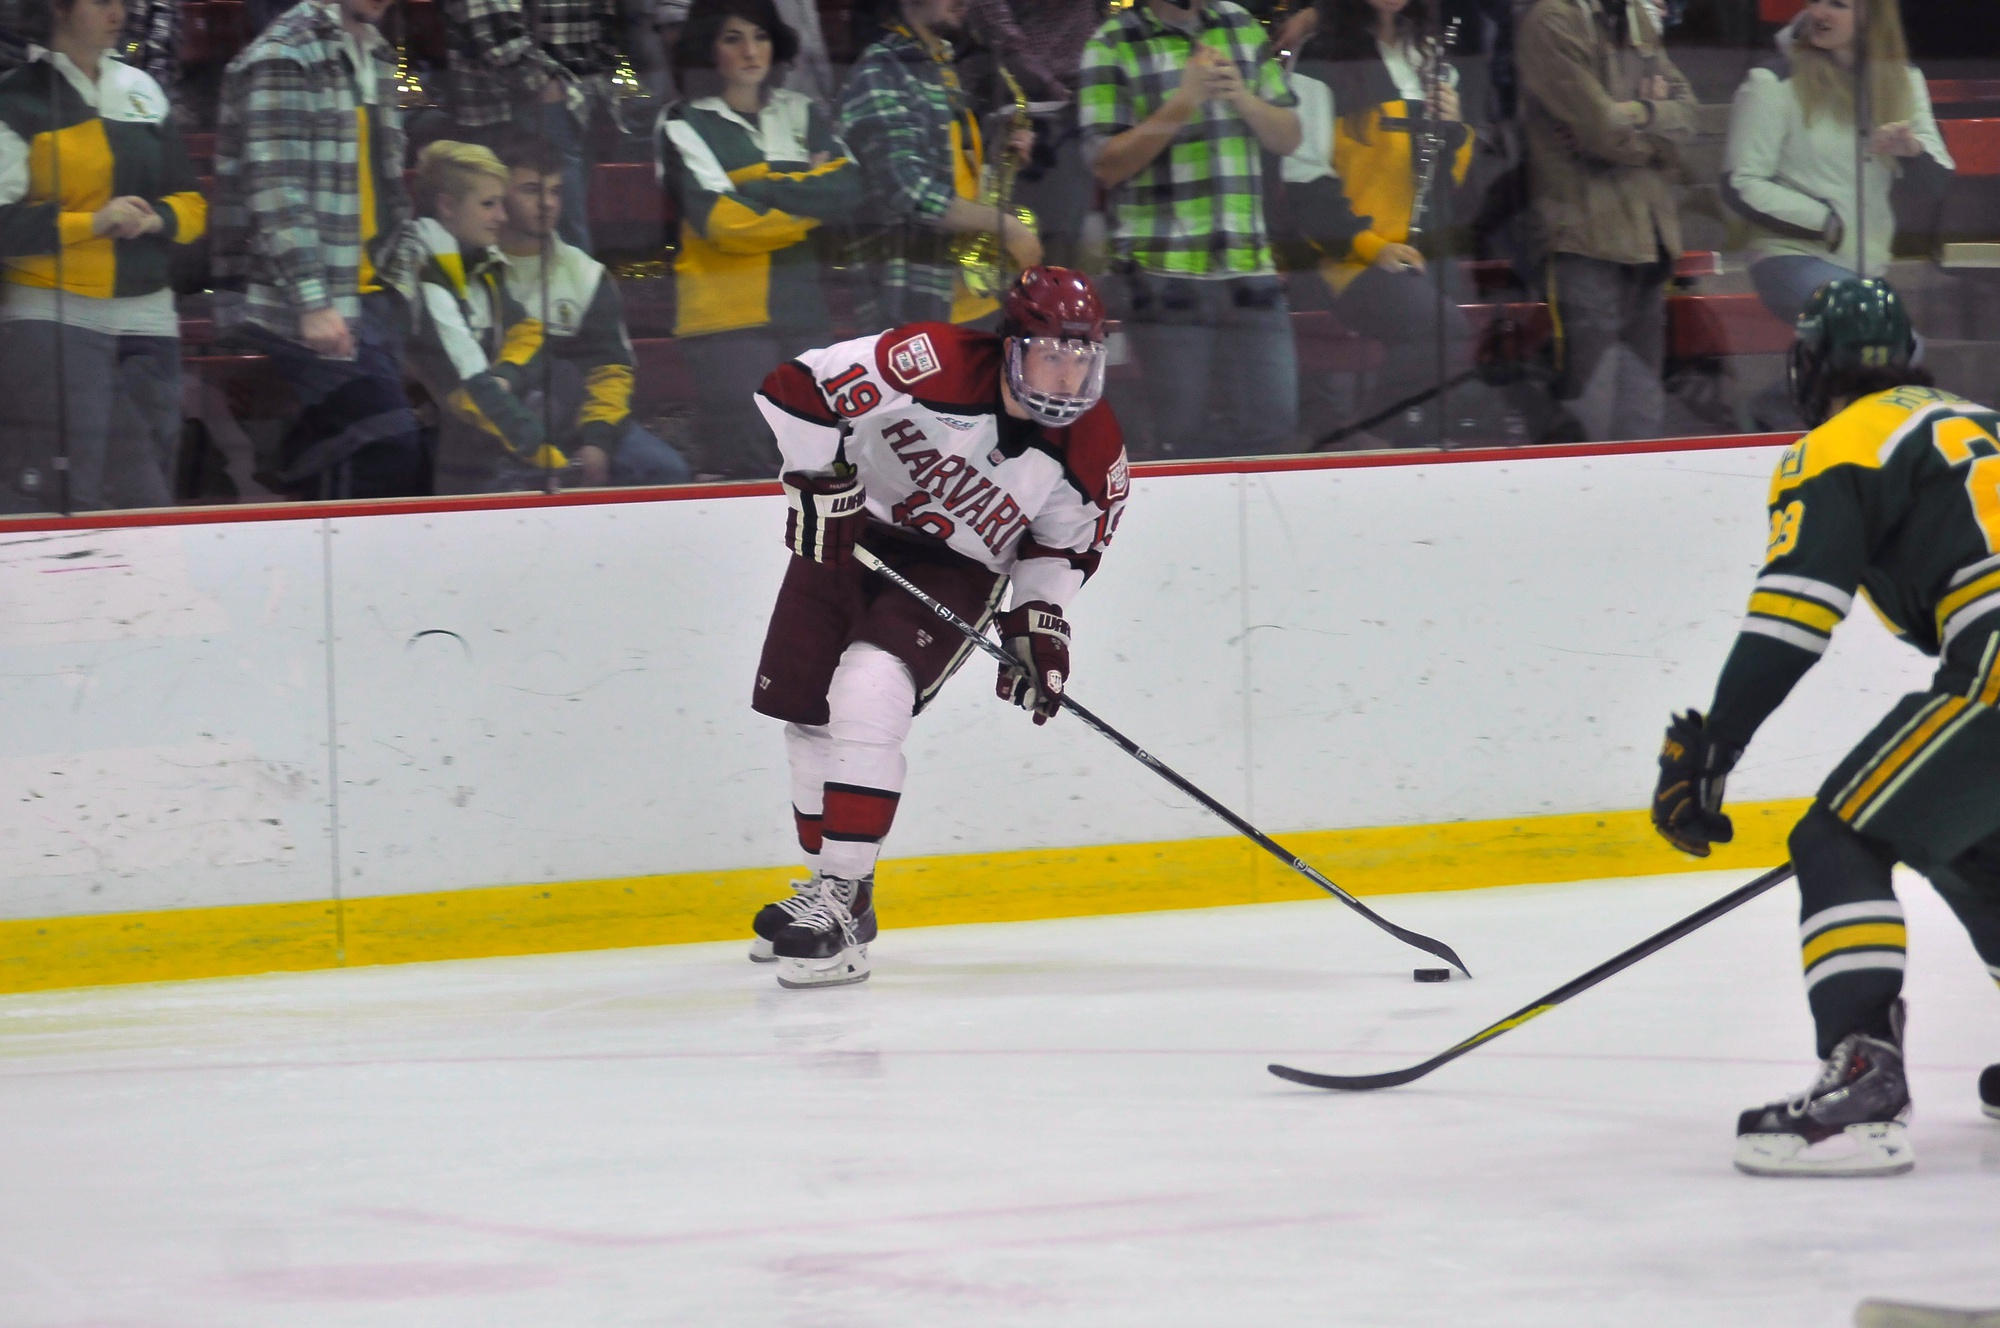 Sophomore forward Jimmy Vesey did it all for the men's hockey team over the weekend. The Massachussetts native scored three goals and added another assist as the Crimson split its matches, losing to No. 6 Quinnipiac before beating Princeton 5-3 on the road.